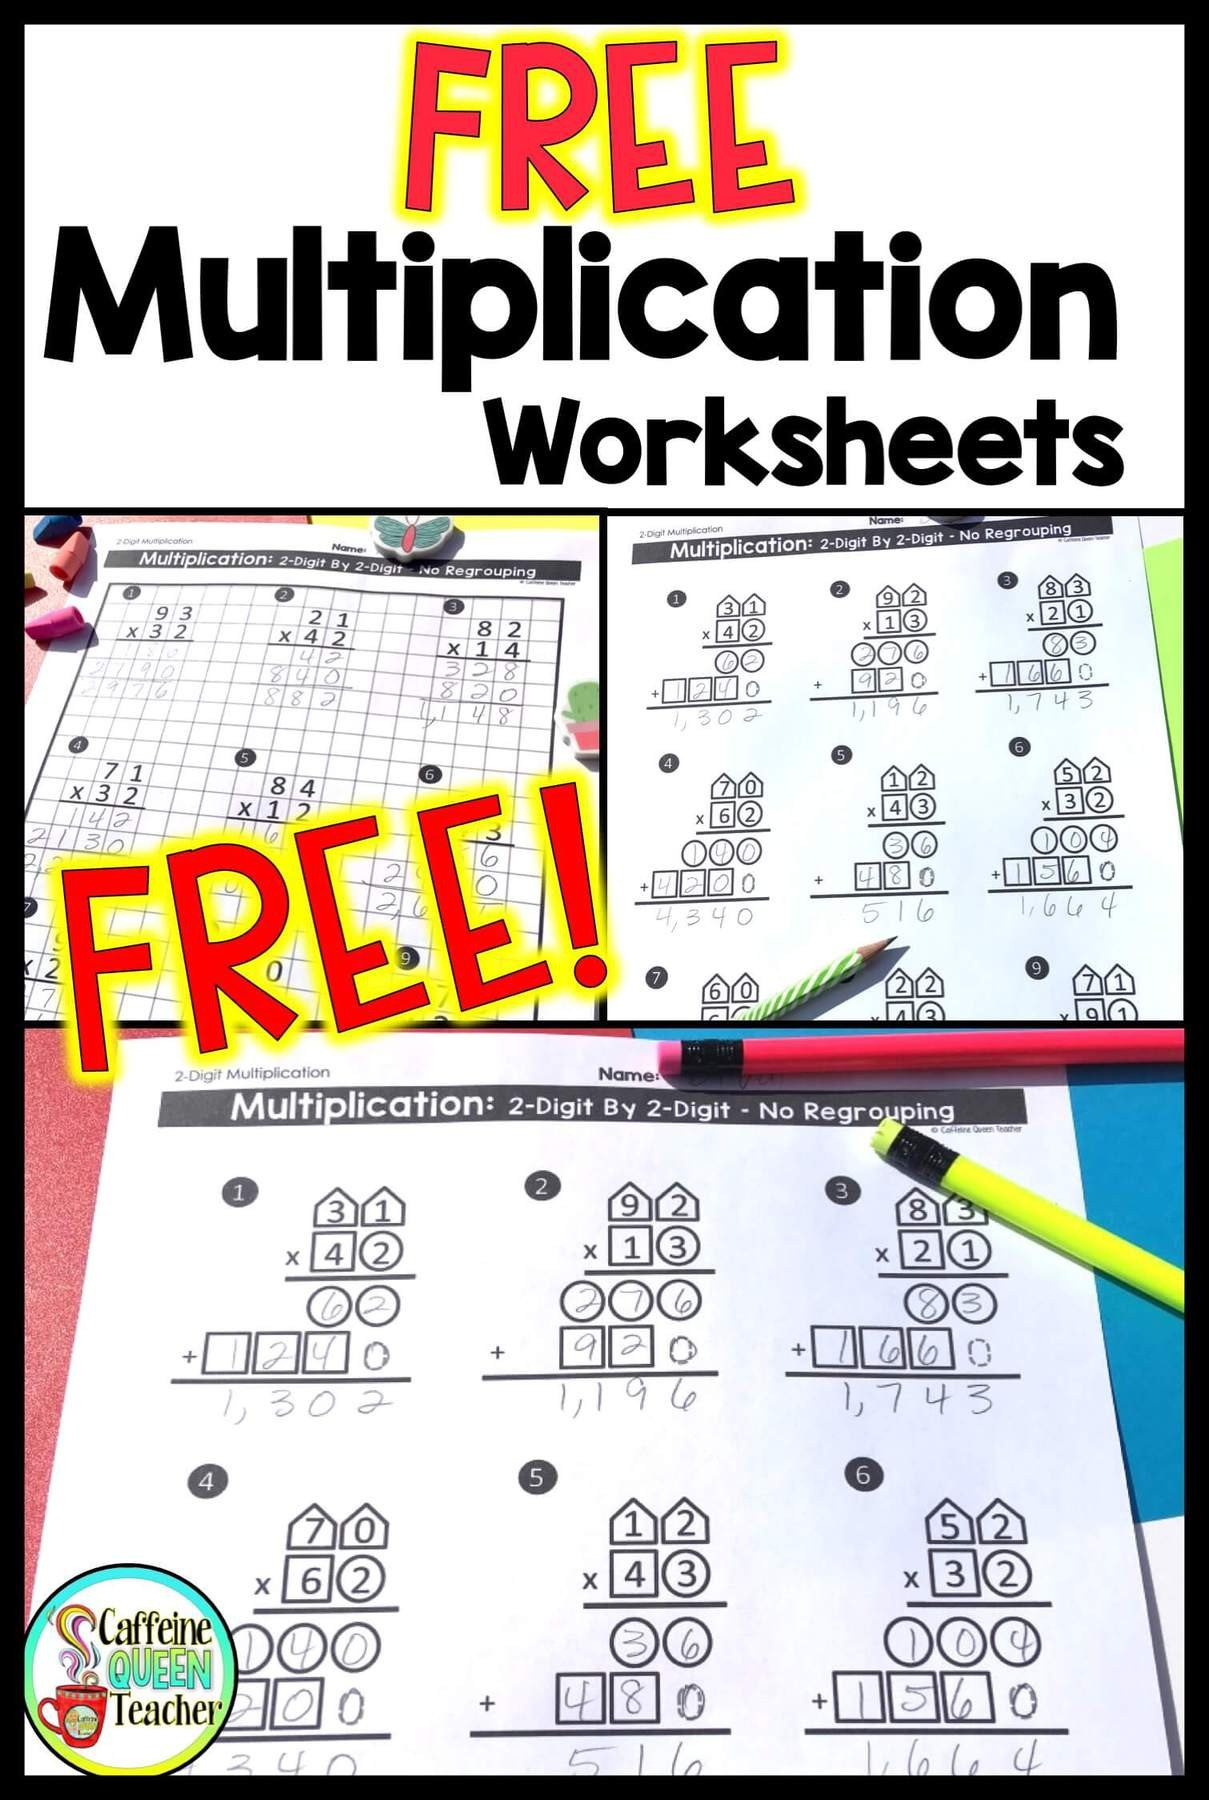 Multiplication Worksheets with Pictures 2 Digit Multiplication Worksheets Differentiated Caffeine